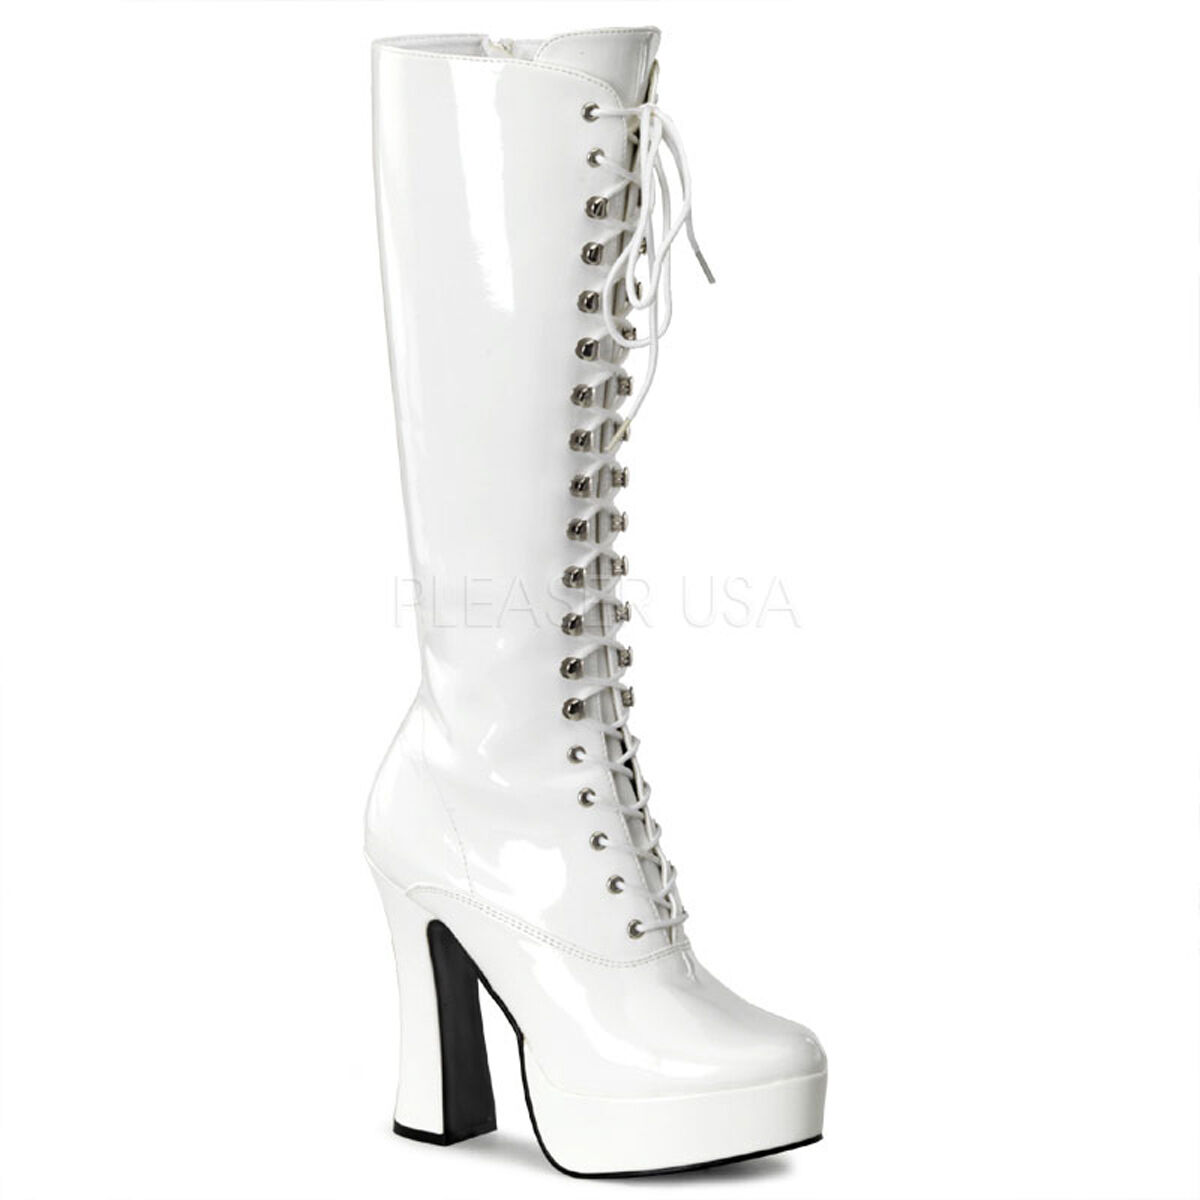 Pleaser ELECTRA-2020 Women's Knee Boot Lace up 5  Platform (Gogo) Boots.